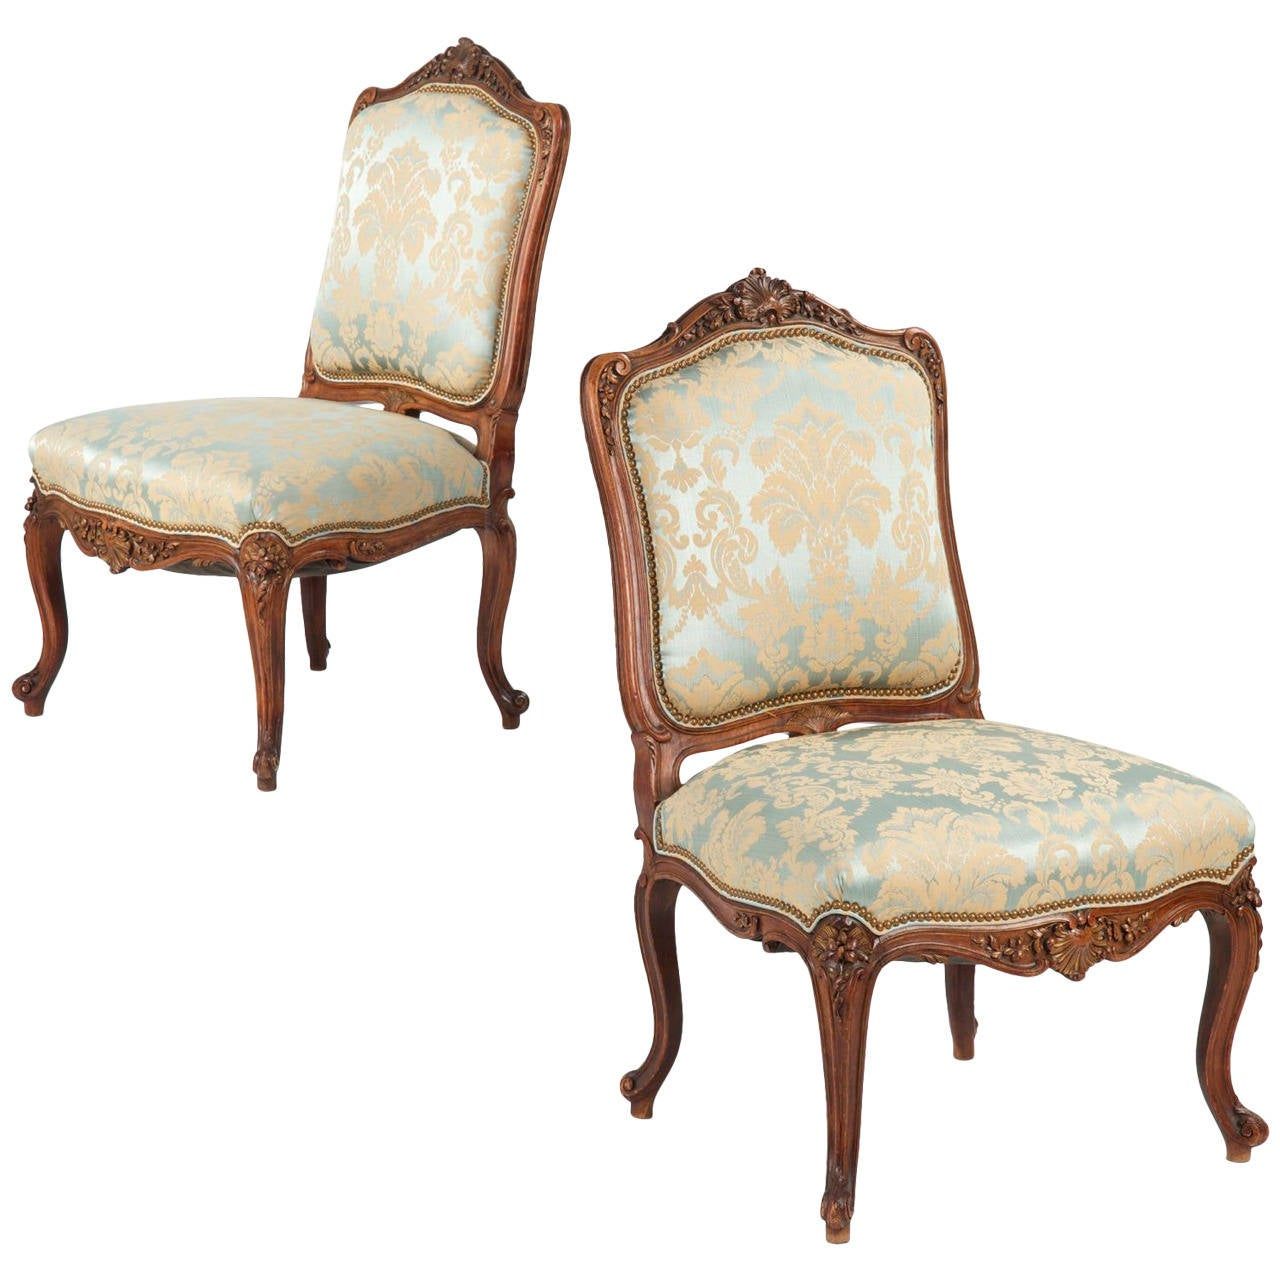 Pair Of French Rococo Revival Antique Walnut Side Chairs 19th Century At 1stdibs